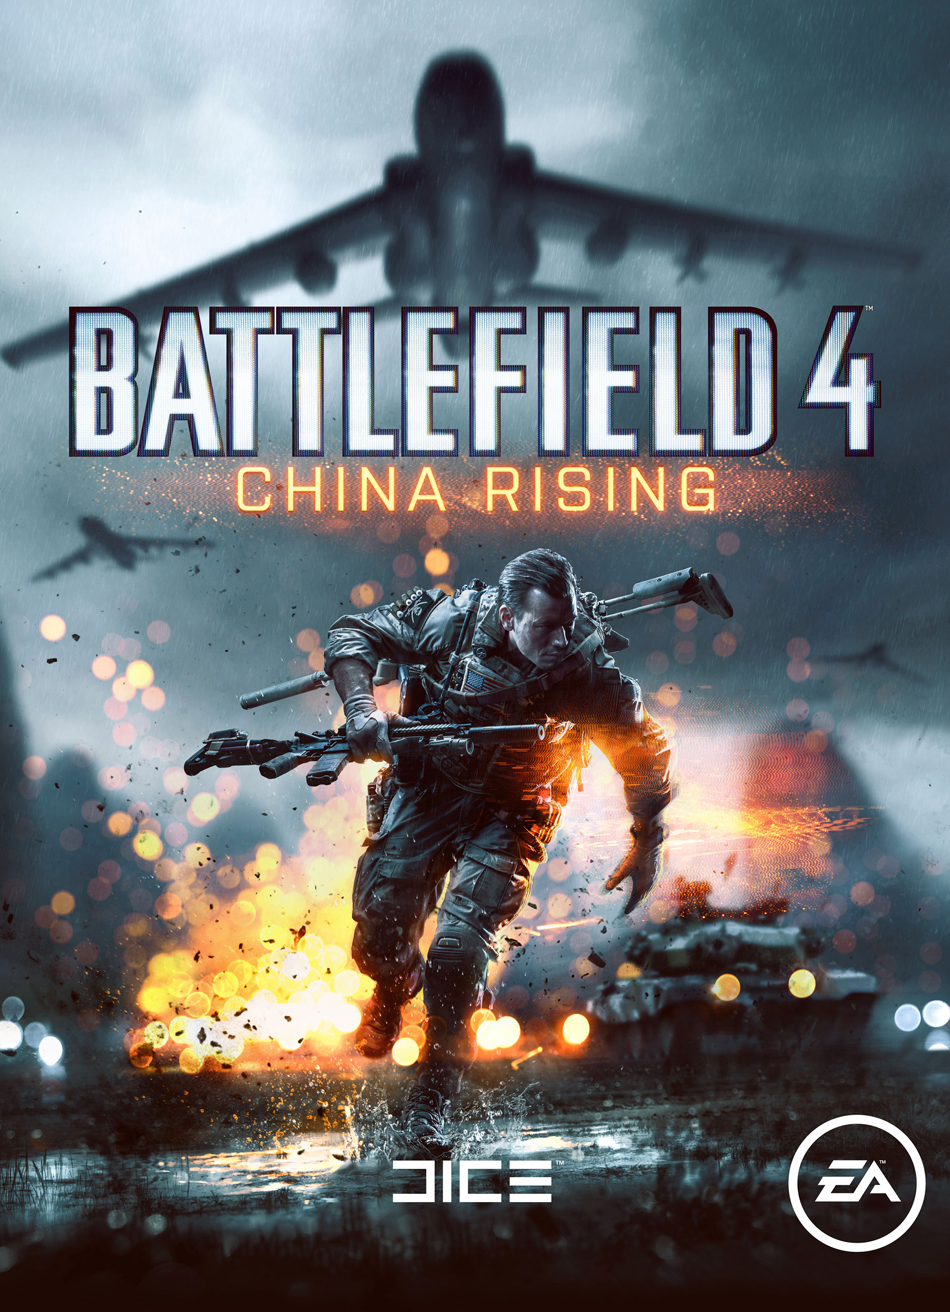 Battlefield 4: China Rising expansion pack free with pre-orders